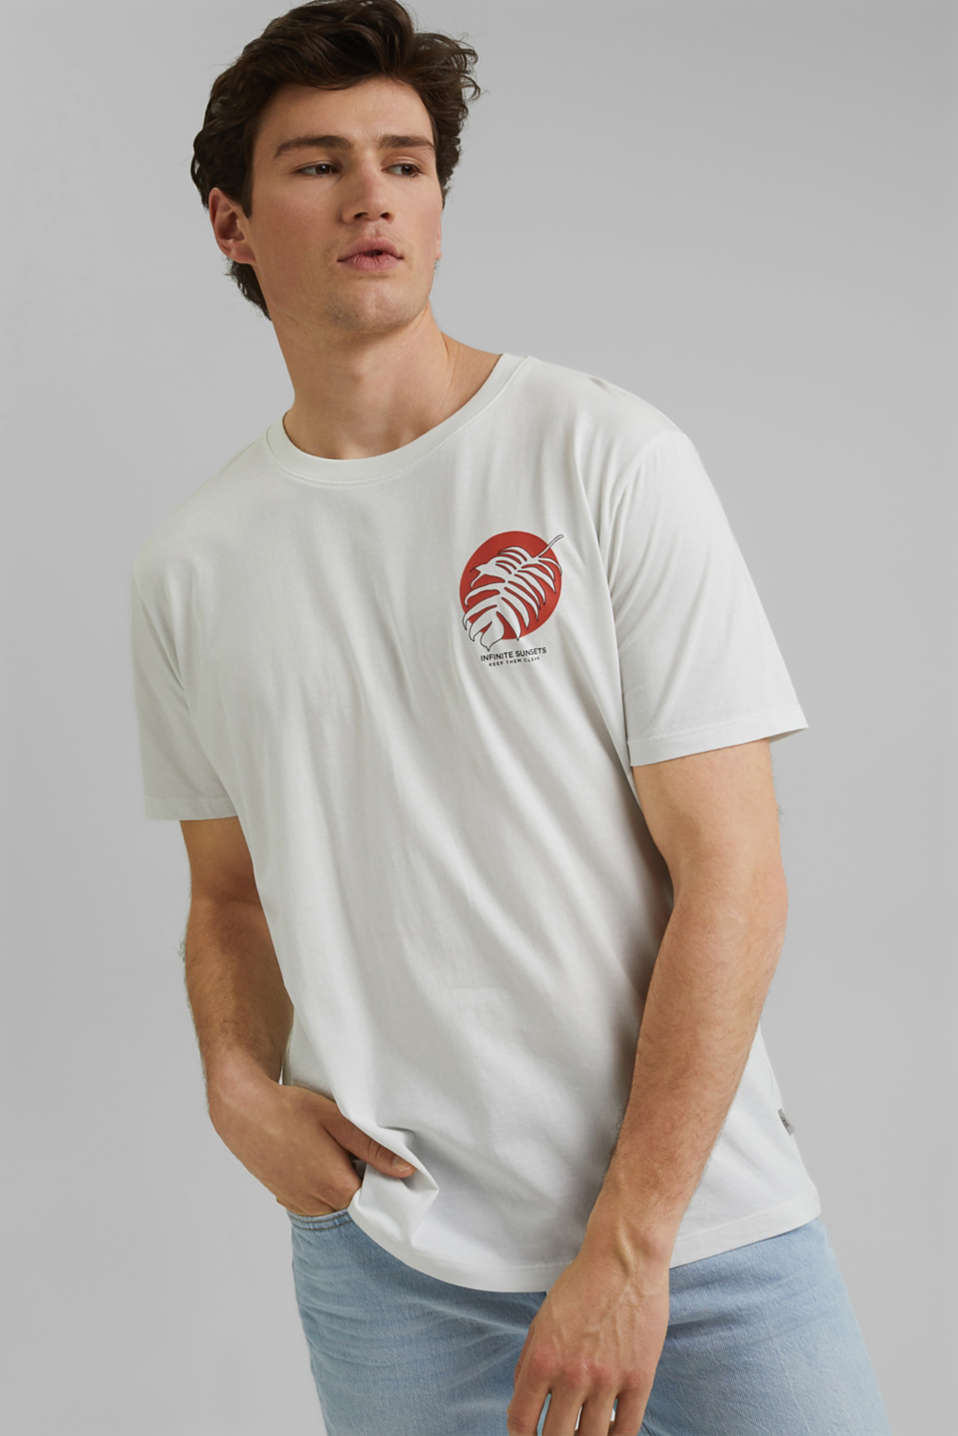 edc - Printed T-shirt, 100% organic cotton